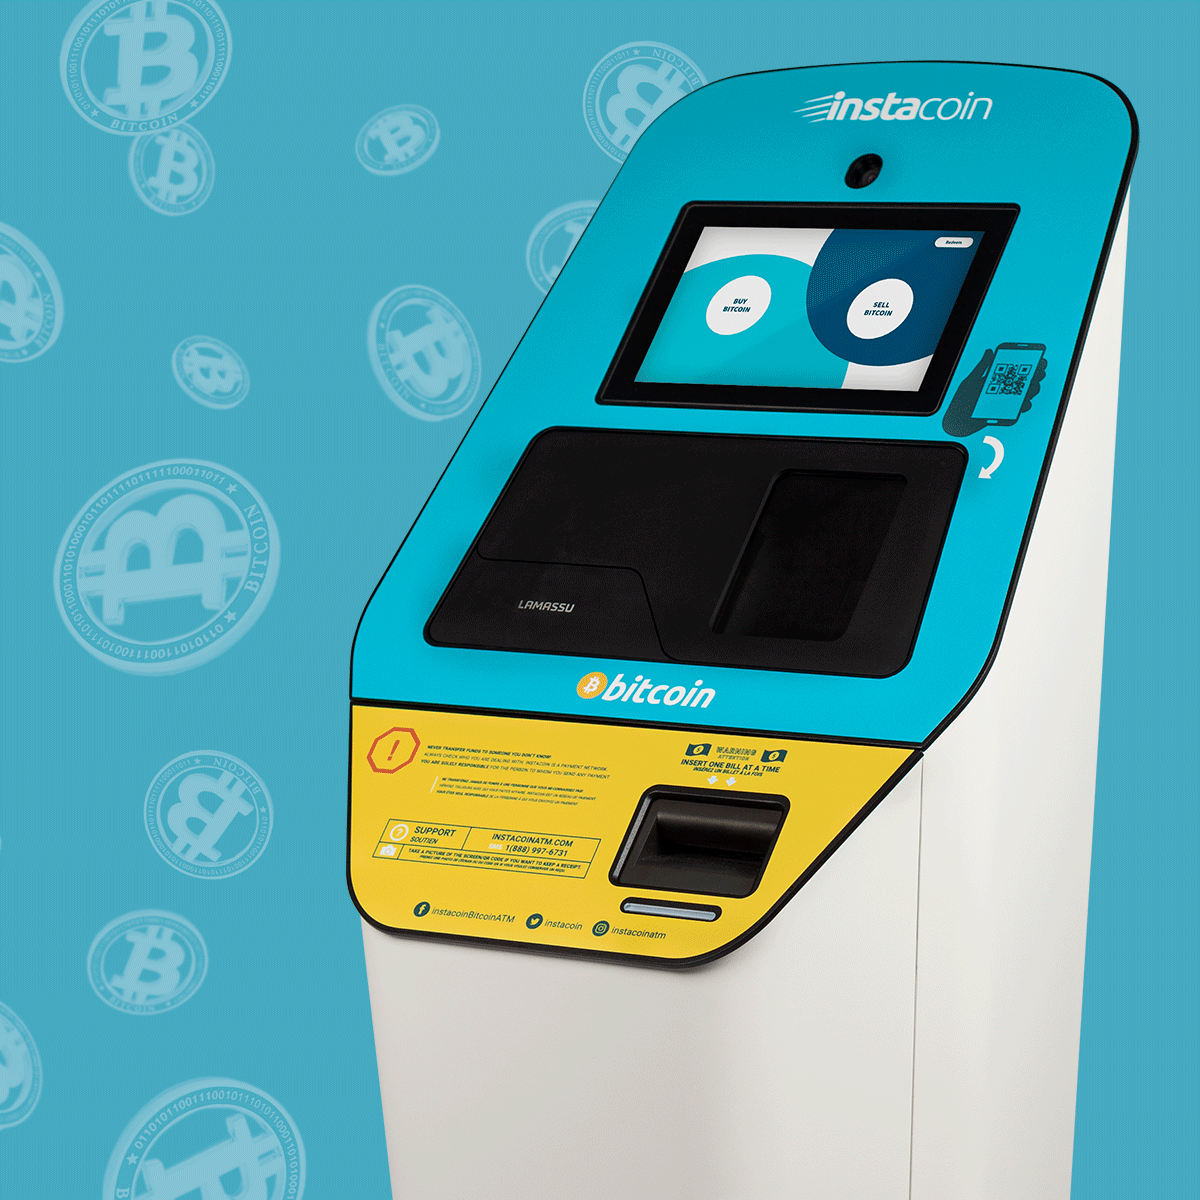 Instacoin ATM Inc has chosen Agence Rinaldi to helm its notoriety campaign